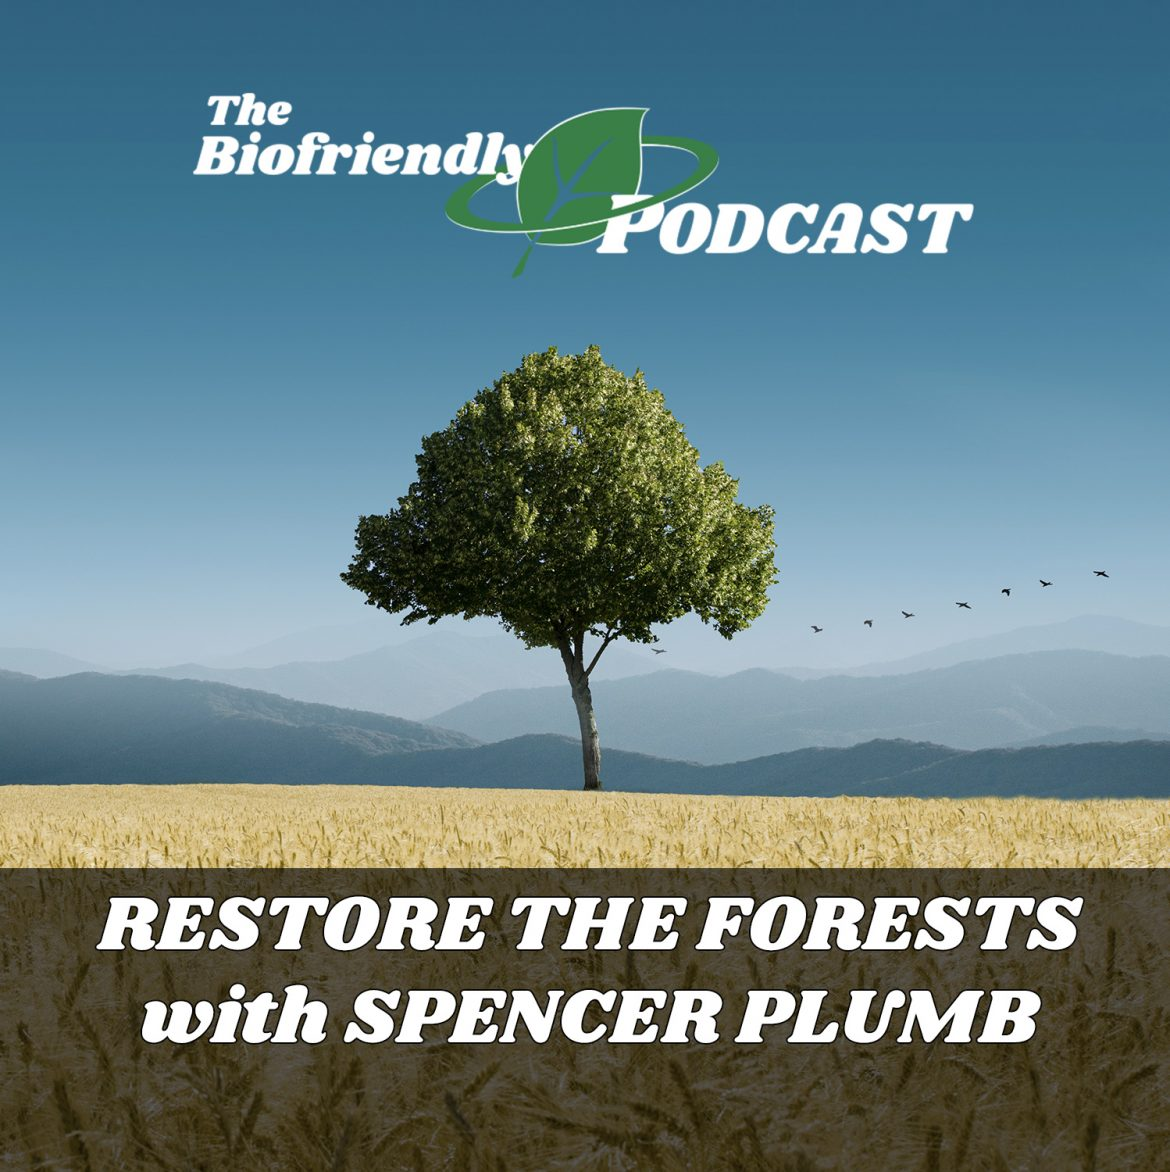 Restore the Forests with Spencer Plumb